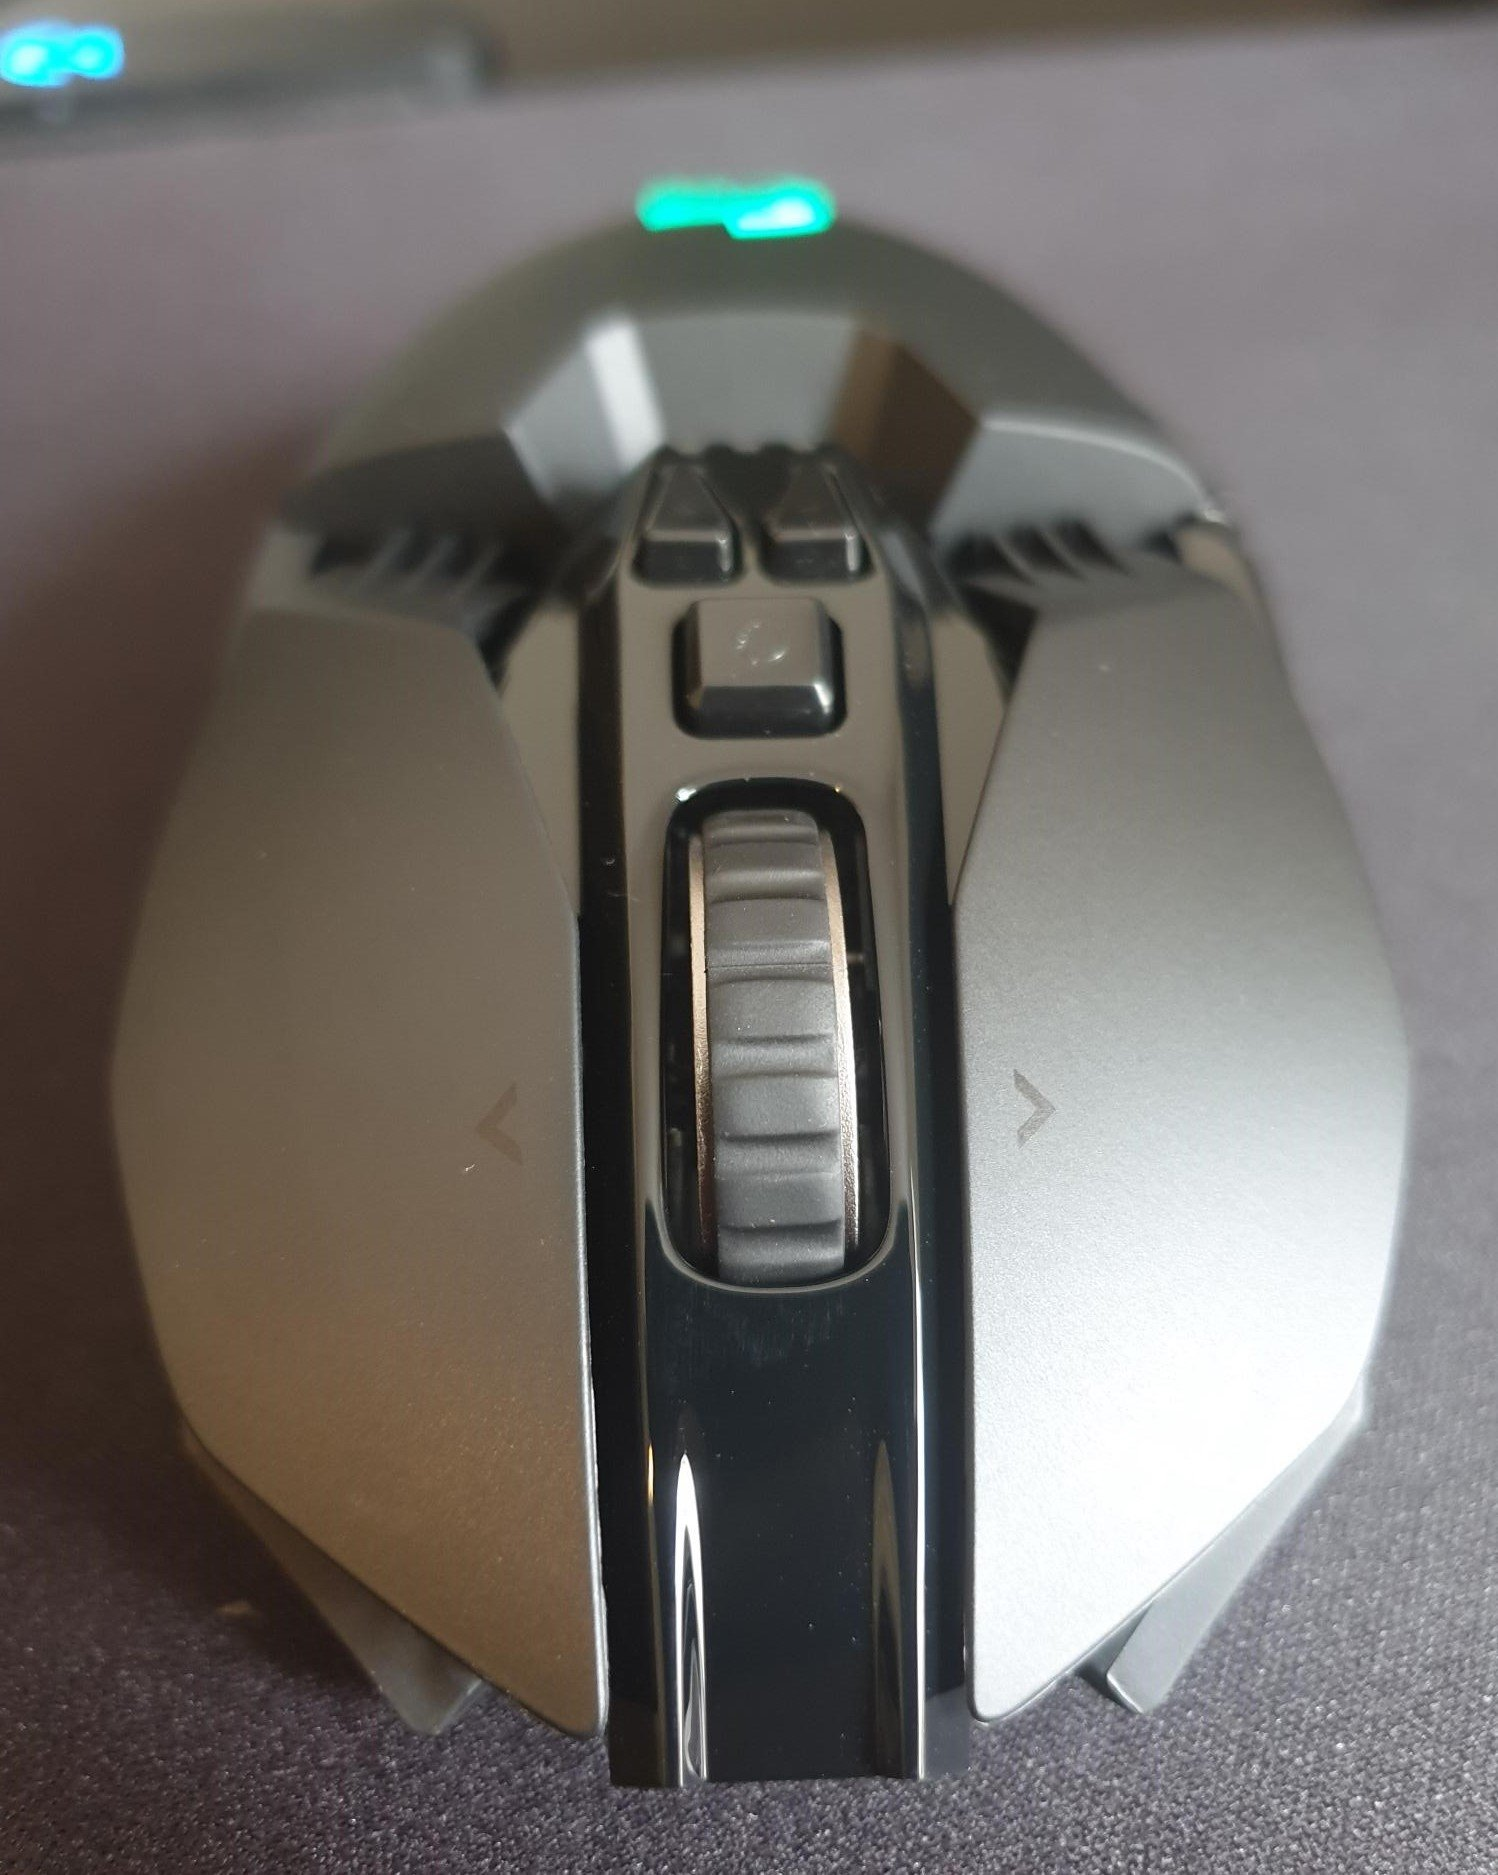 Image of G903 for mouse review